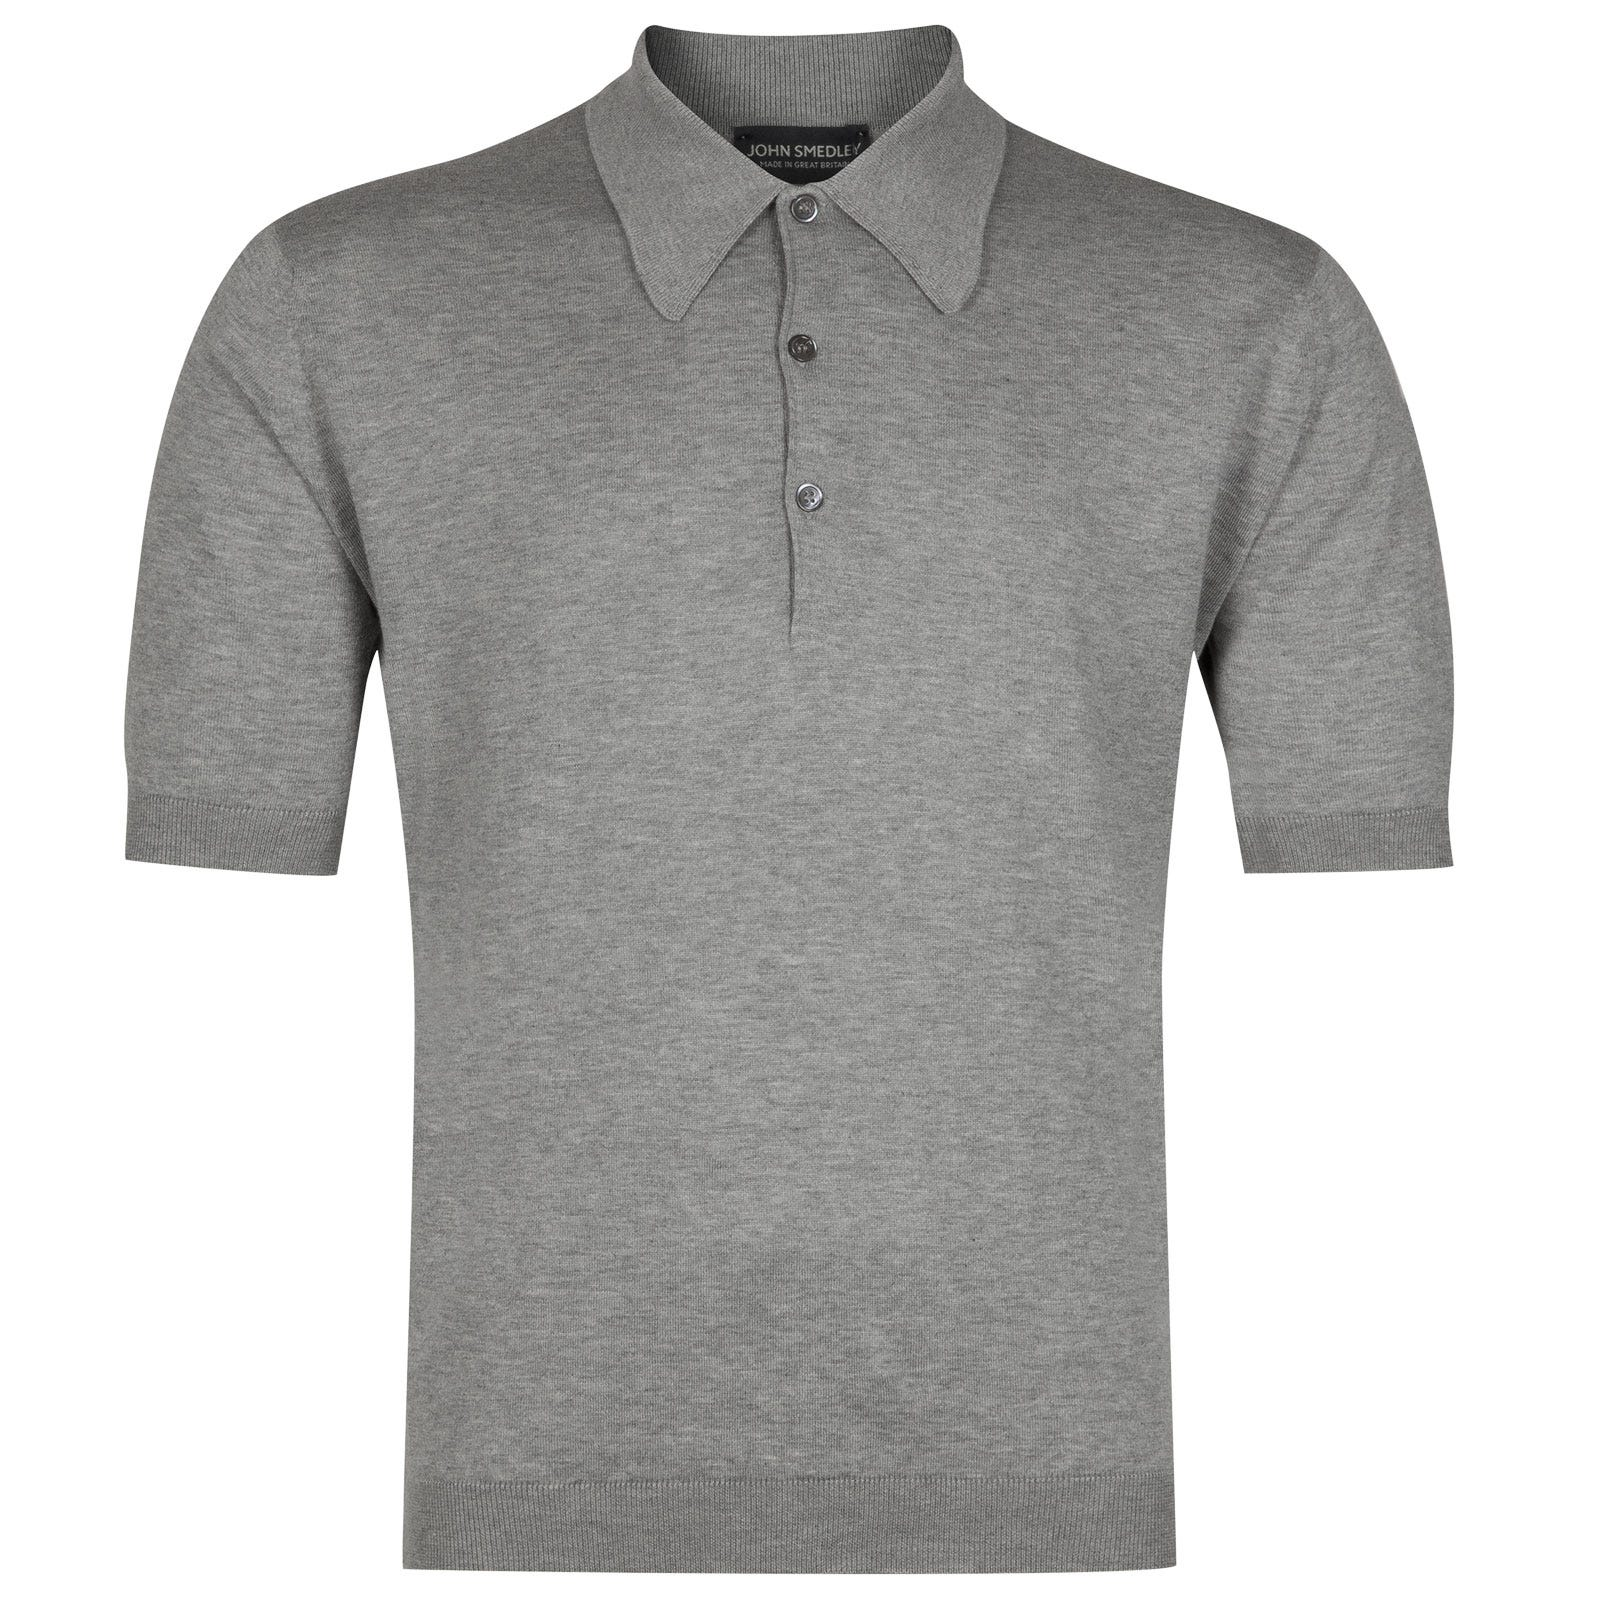 John Smedley Isis Sea Island Cotton Shirt in Silver-S